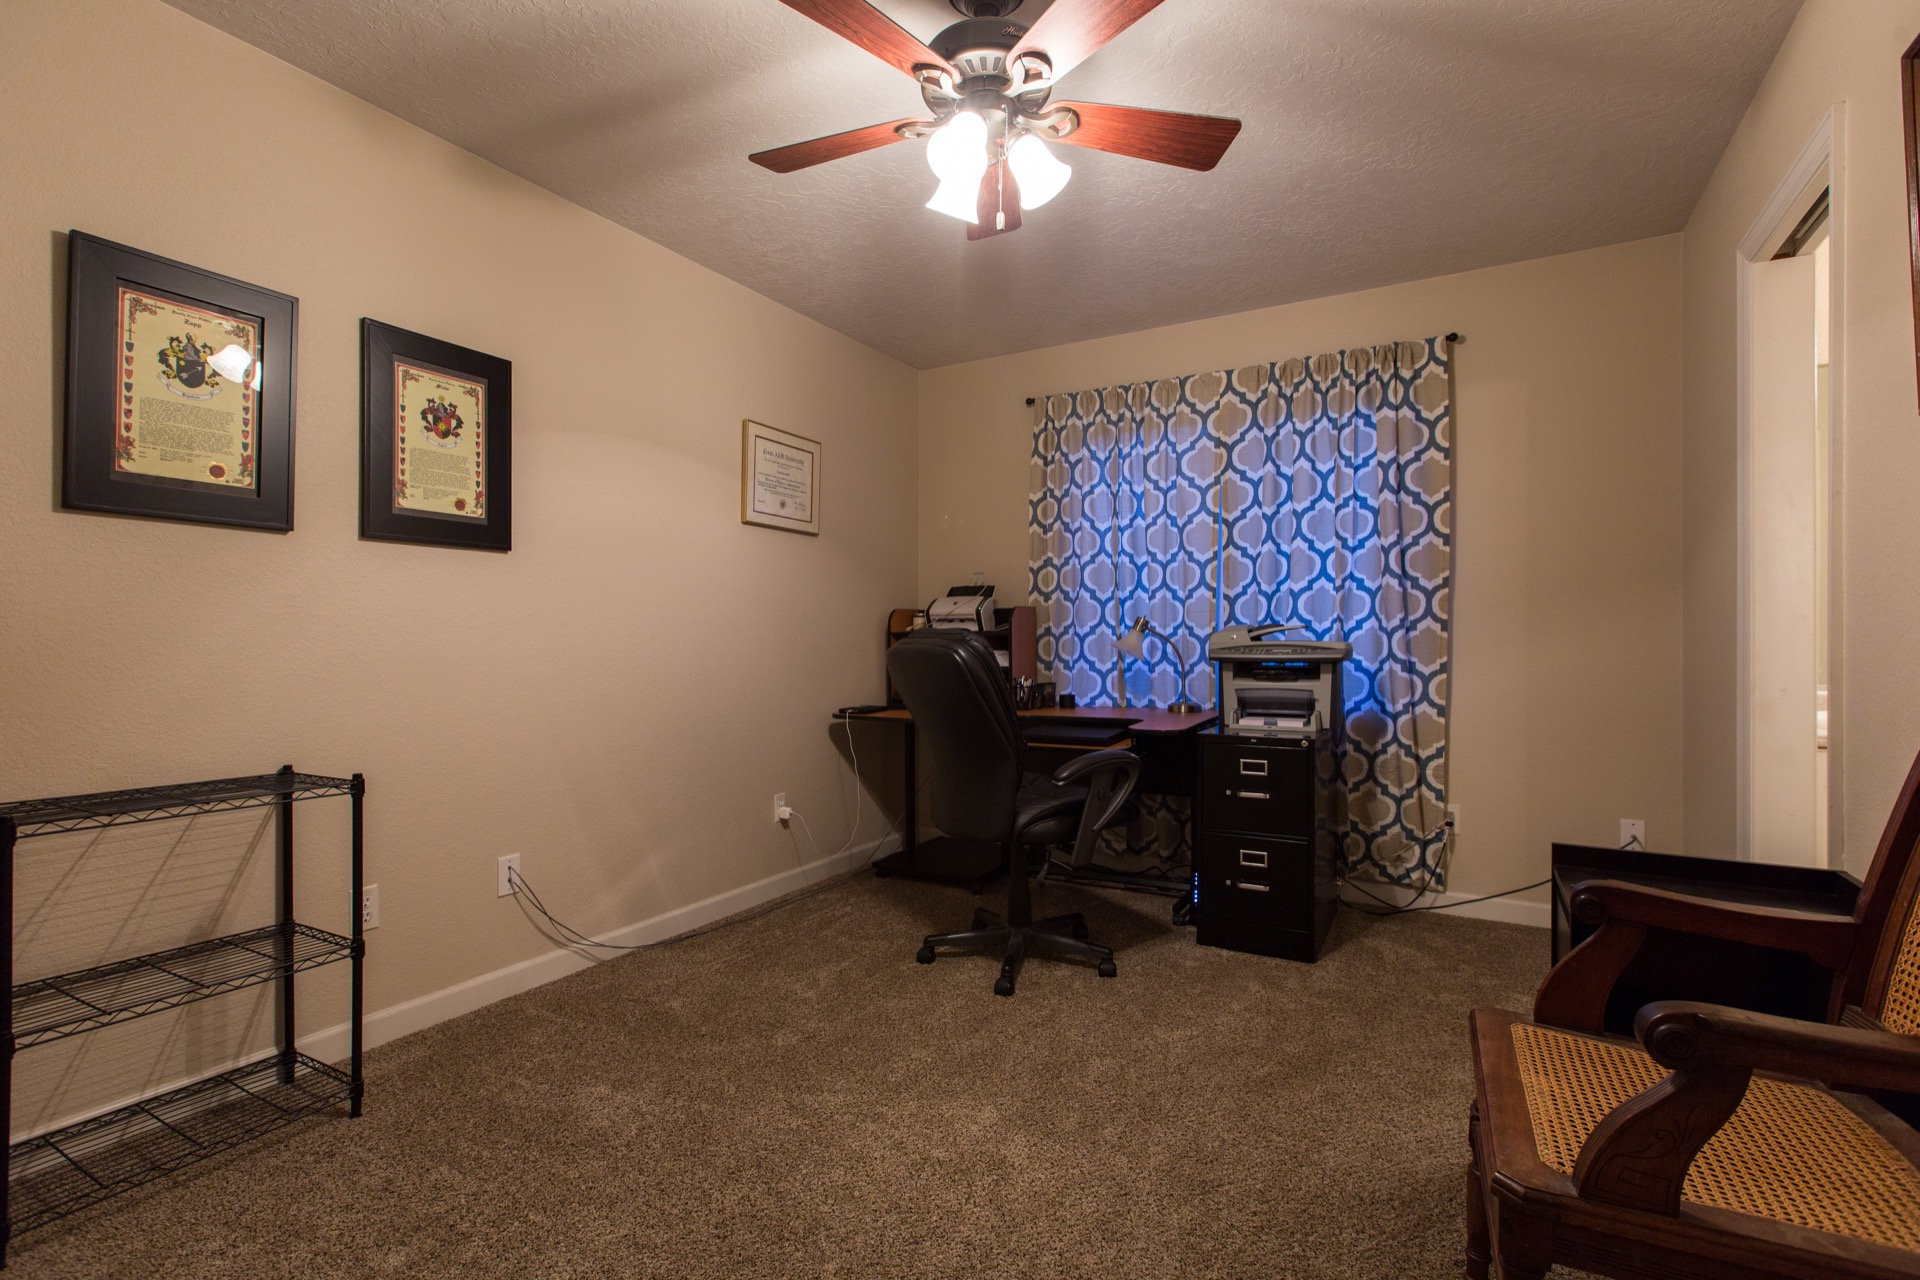 7136 Canberra St Greeley, CO-29.jpg